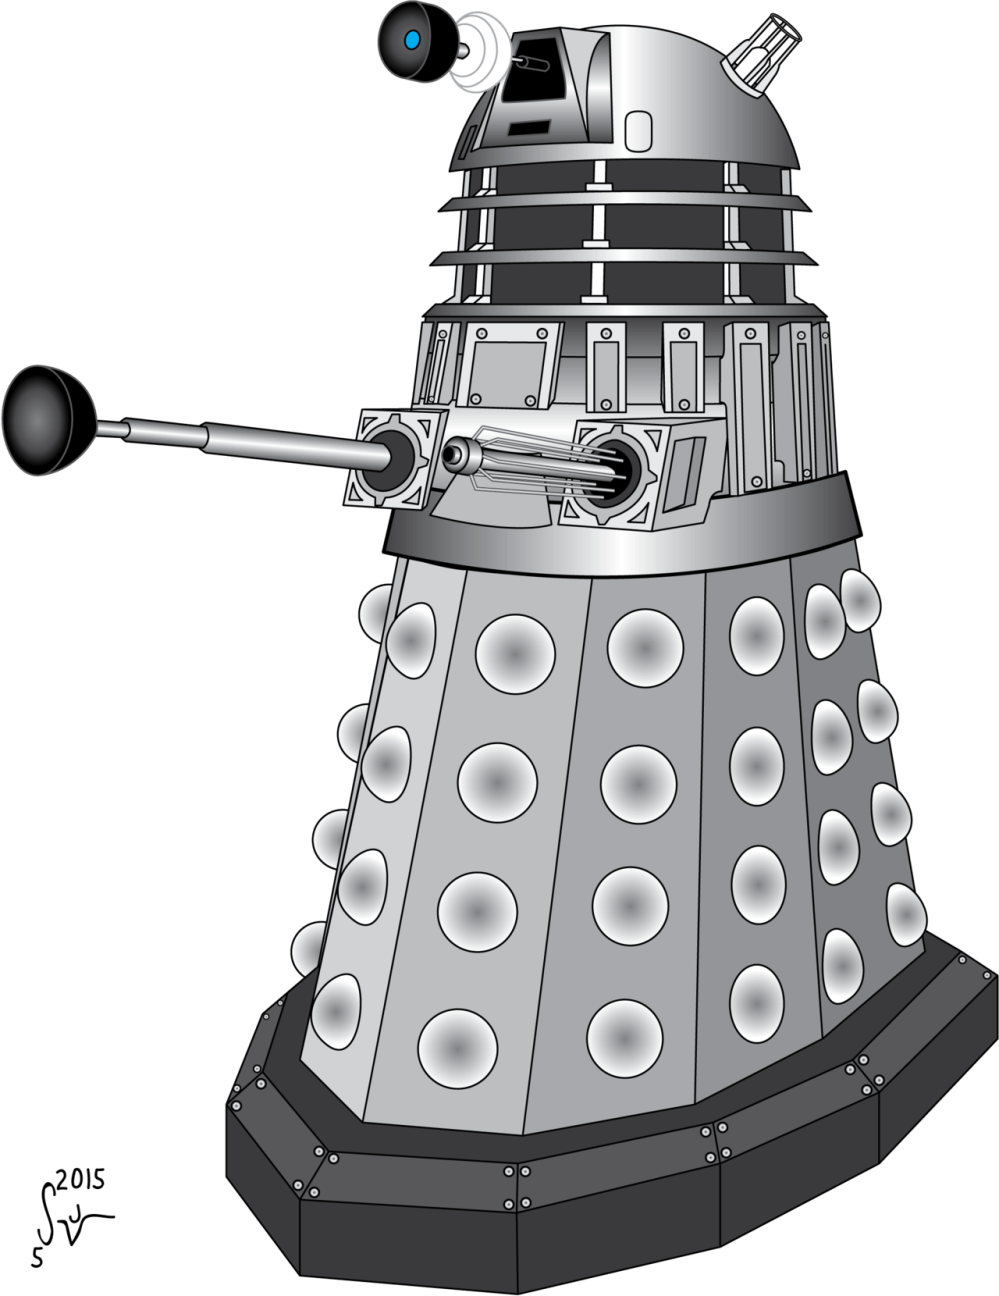 medium resolution of doctor who clipart dalek dr who dalek png 1280x1660 png download